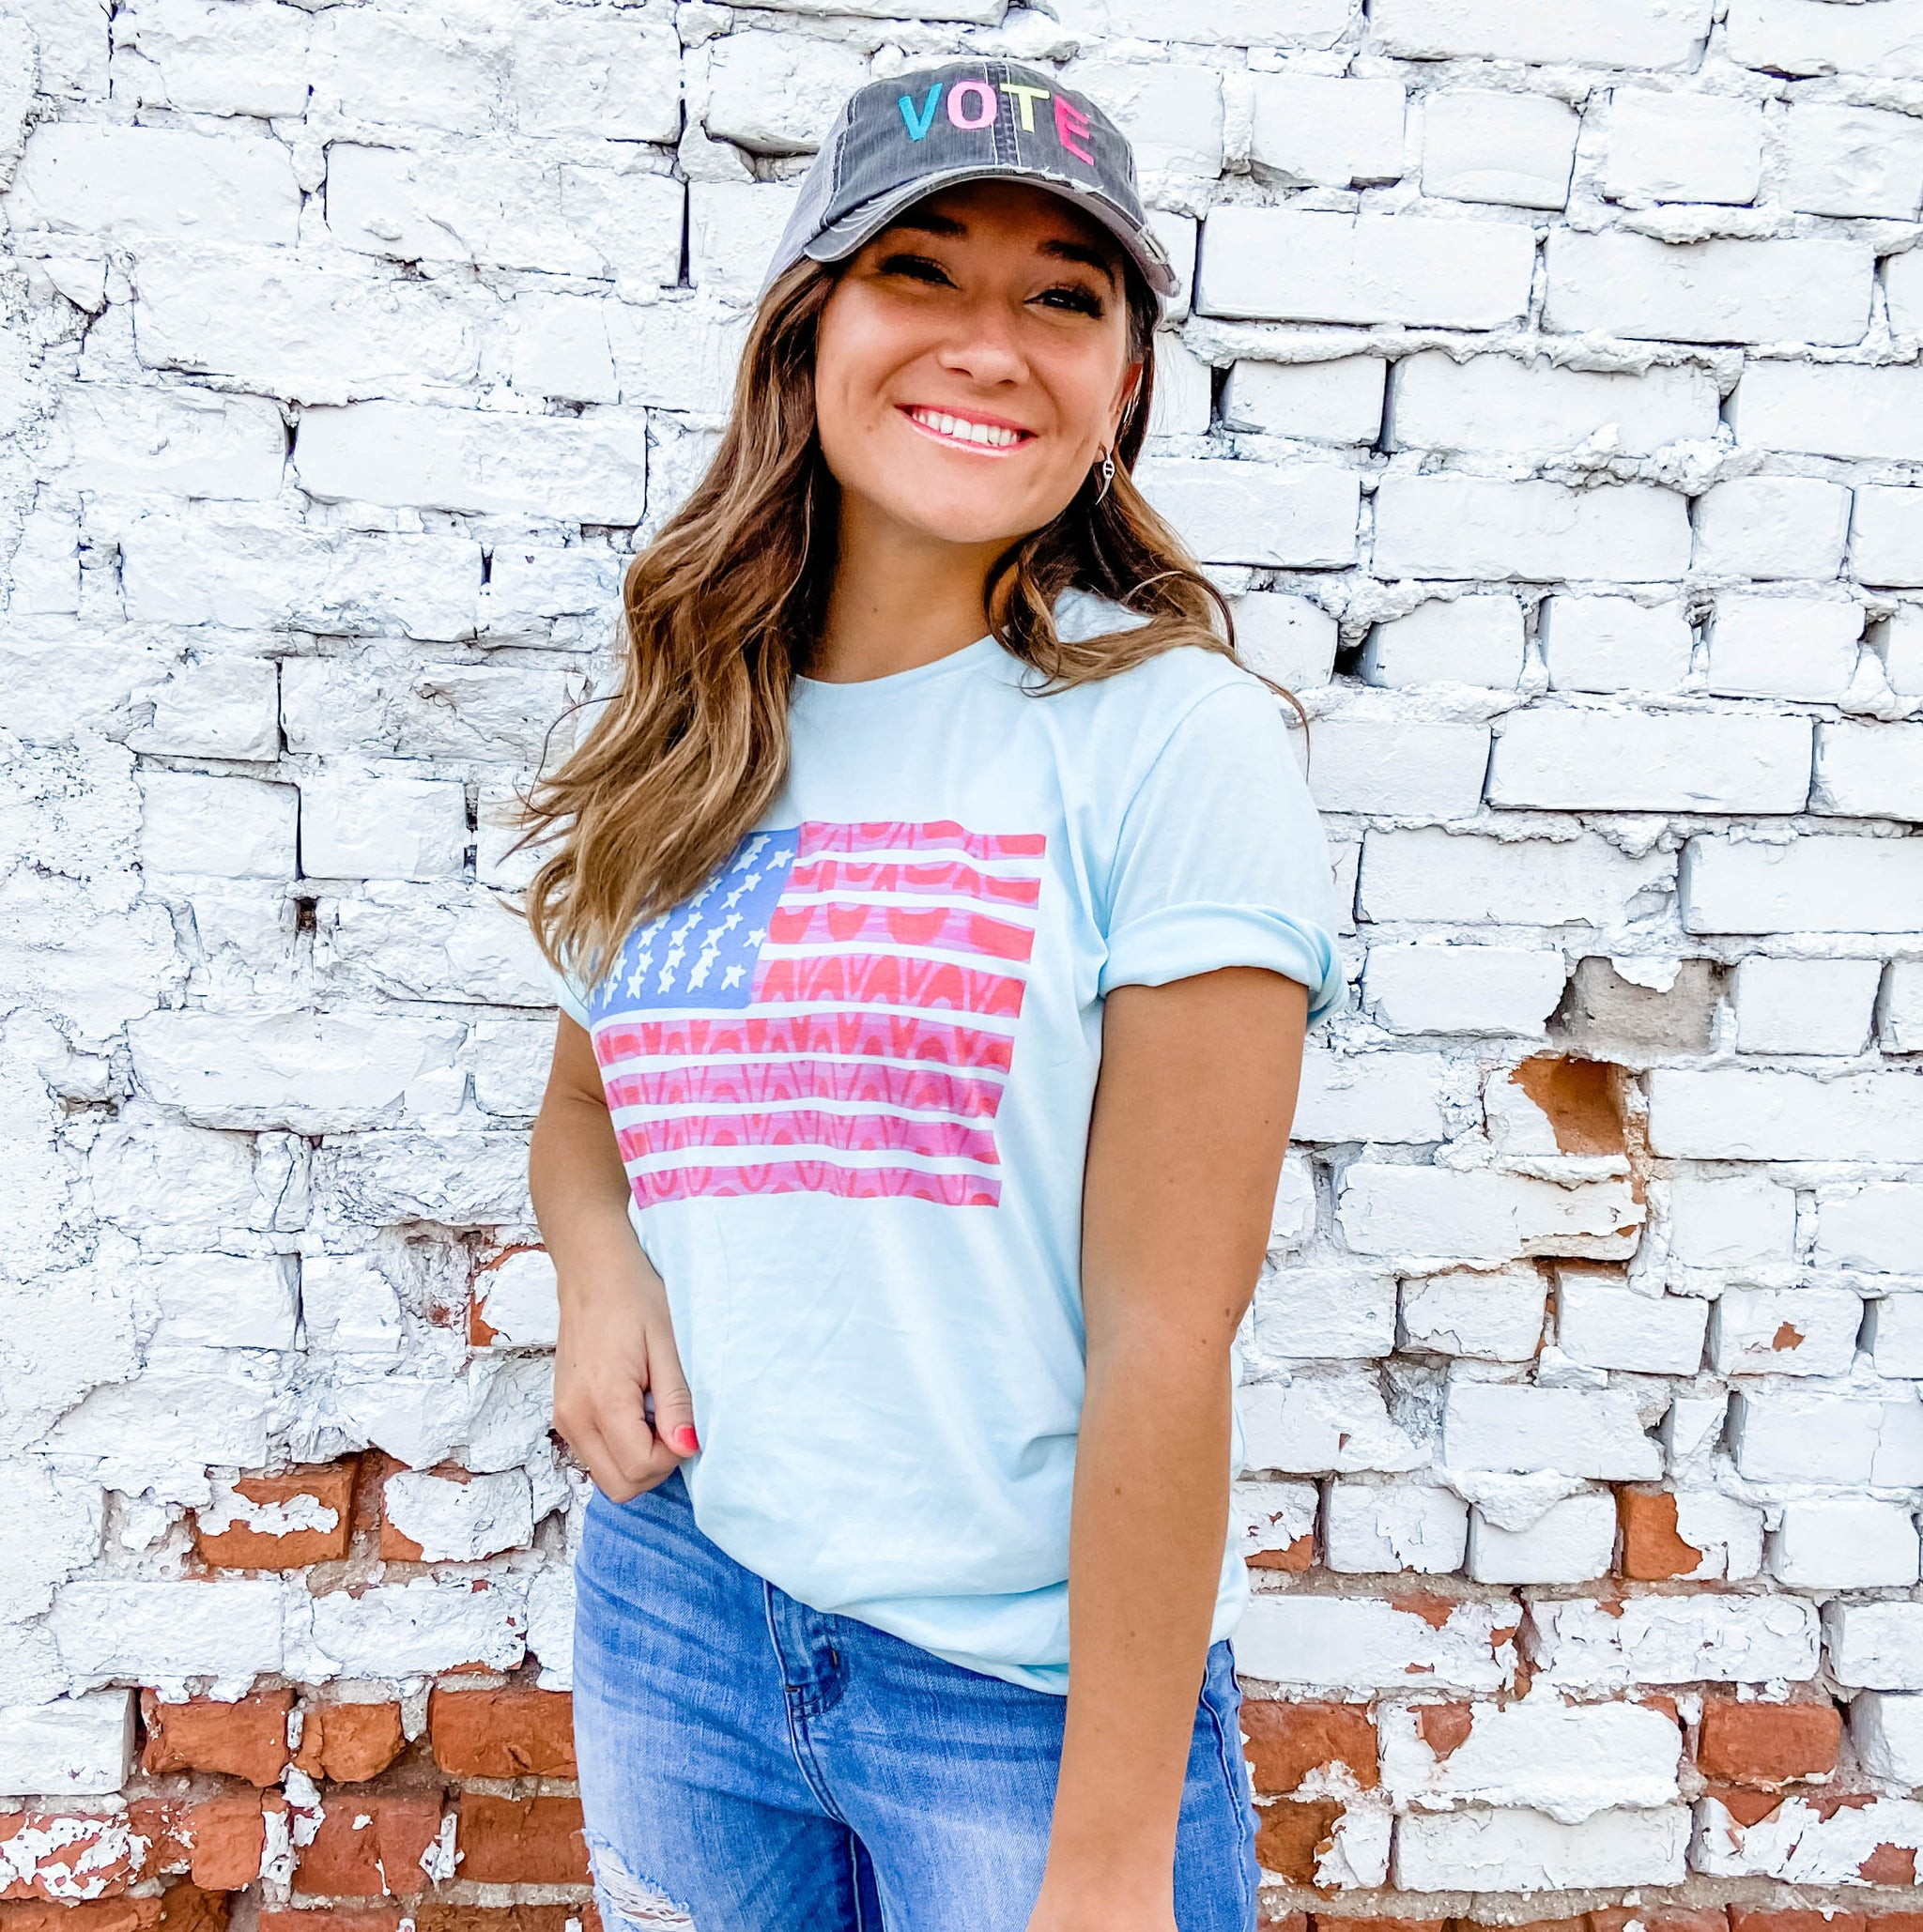 Katydid USA Flag Wholesale Women's T- Shirt